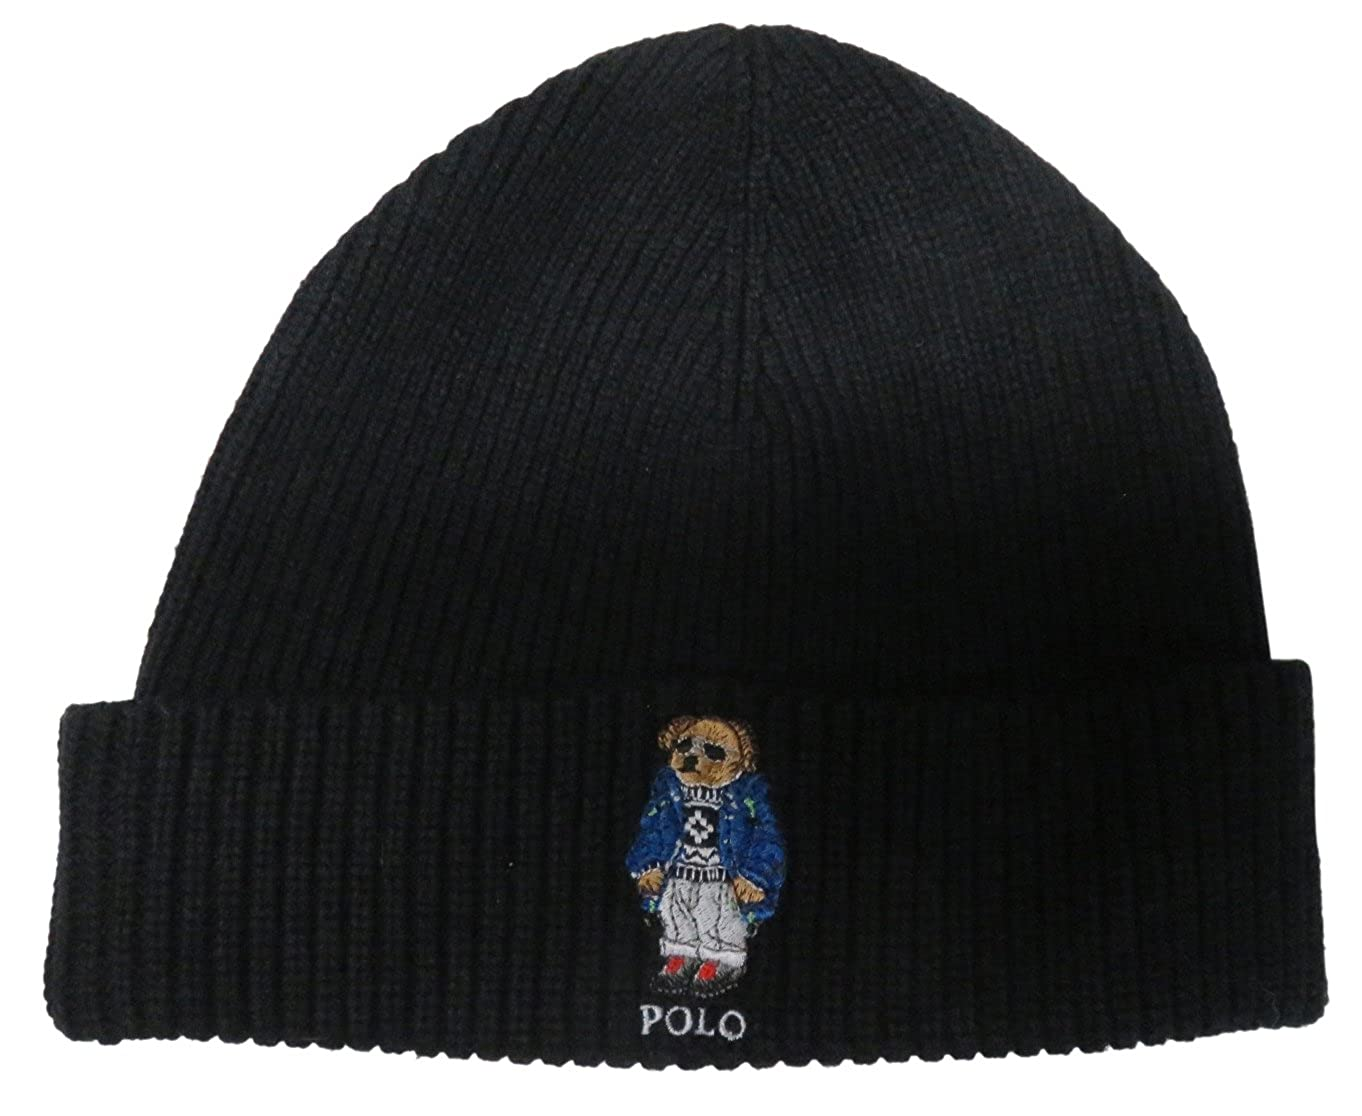 af5ed4a8021b72 RALPH LAUREN Polo Men's Polo Bear Hat Skull Cap (One Size, Black) at Amazon  Men's Clothing store: